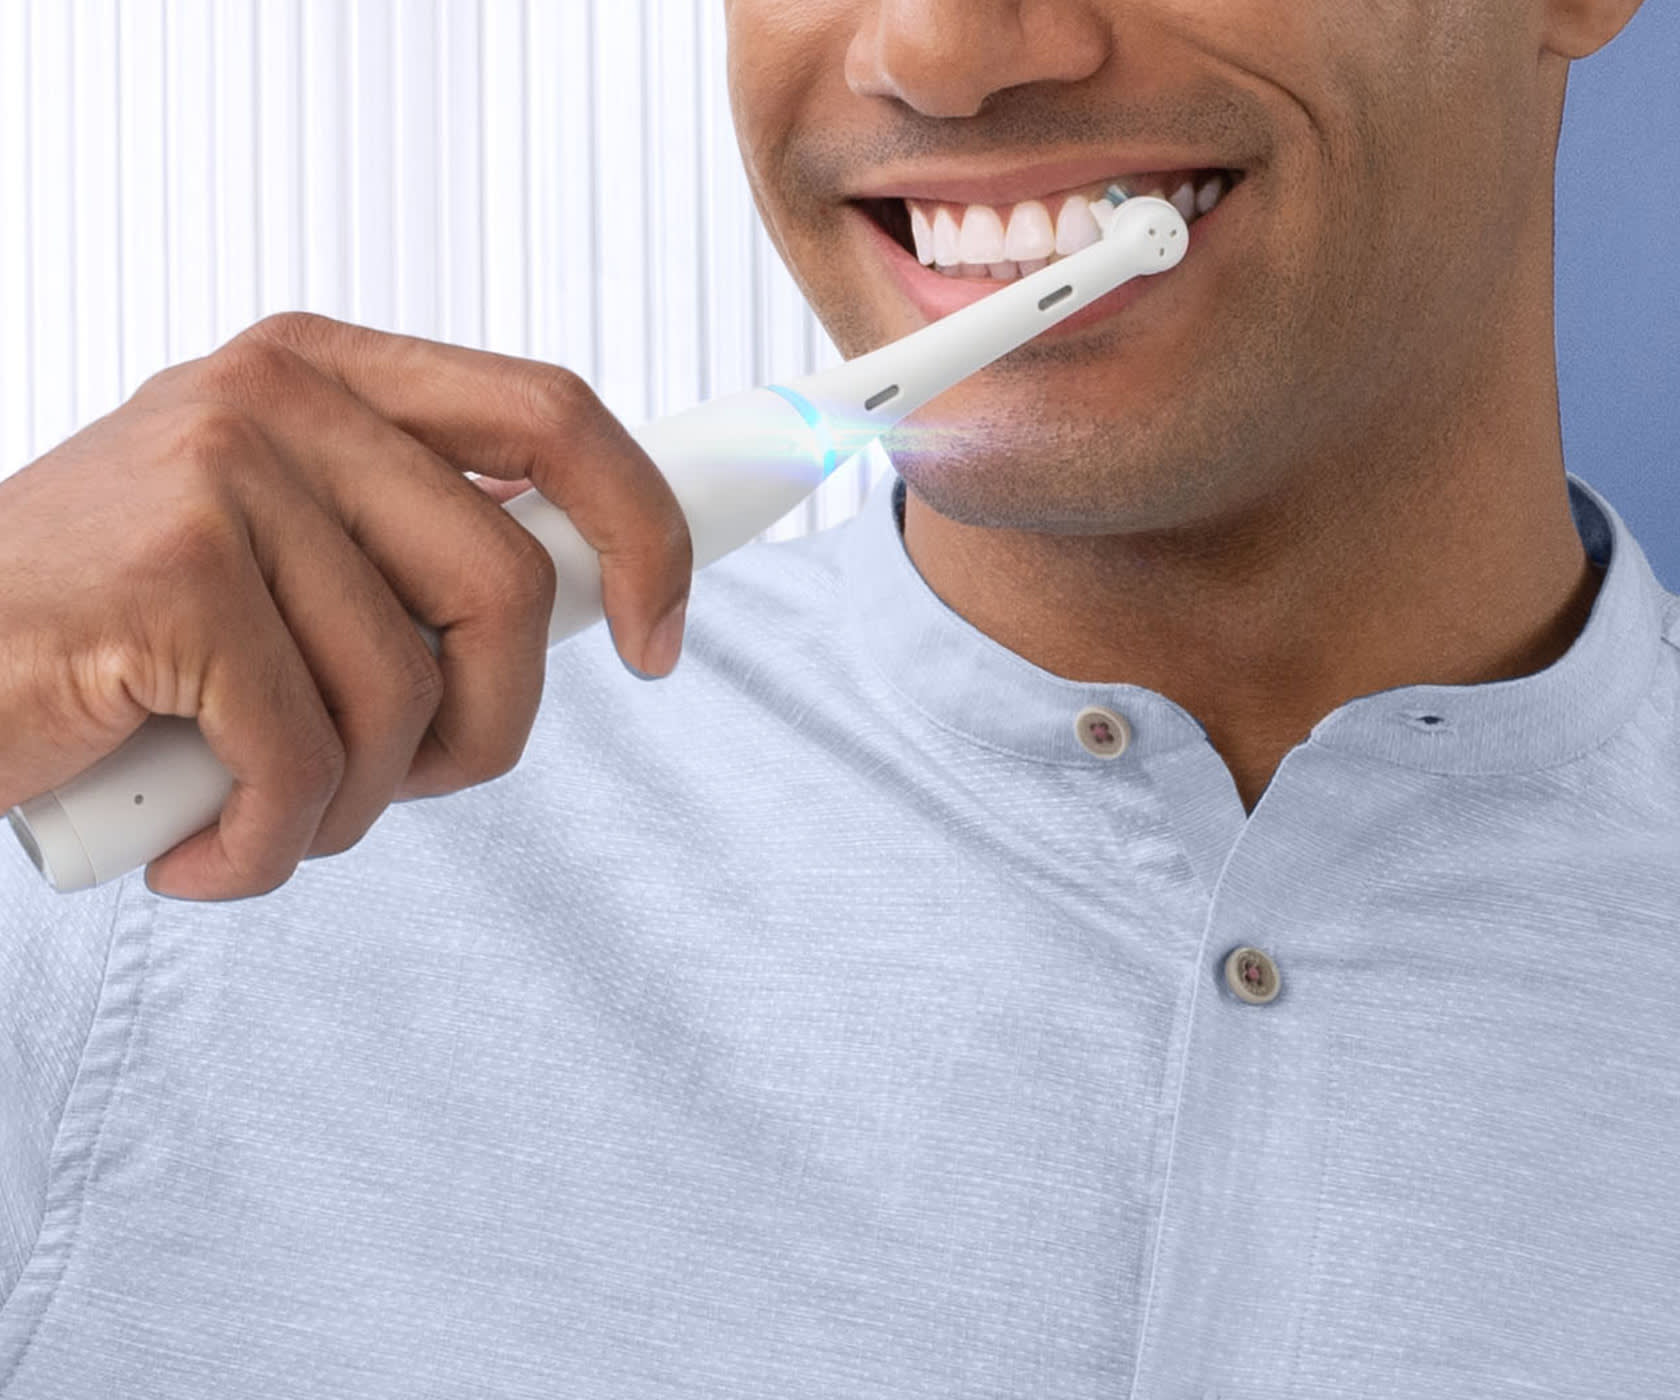 Man brushing his teeth with Oral-B's iO Series 7 electric white toothbrush undefined